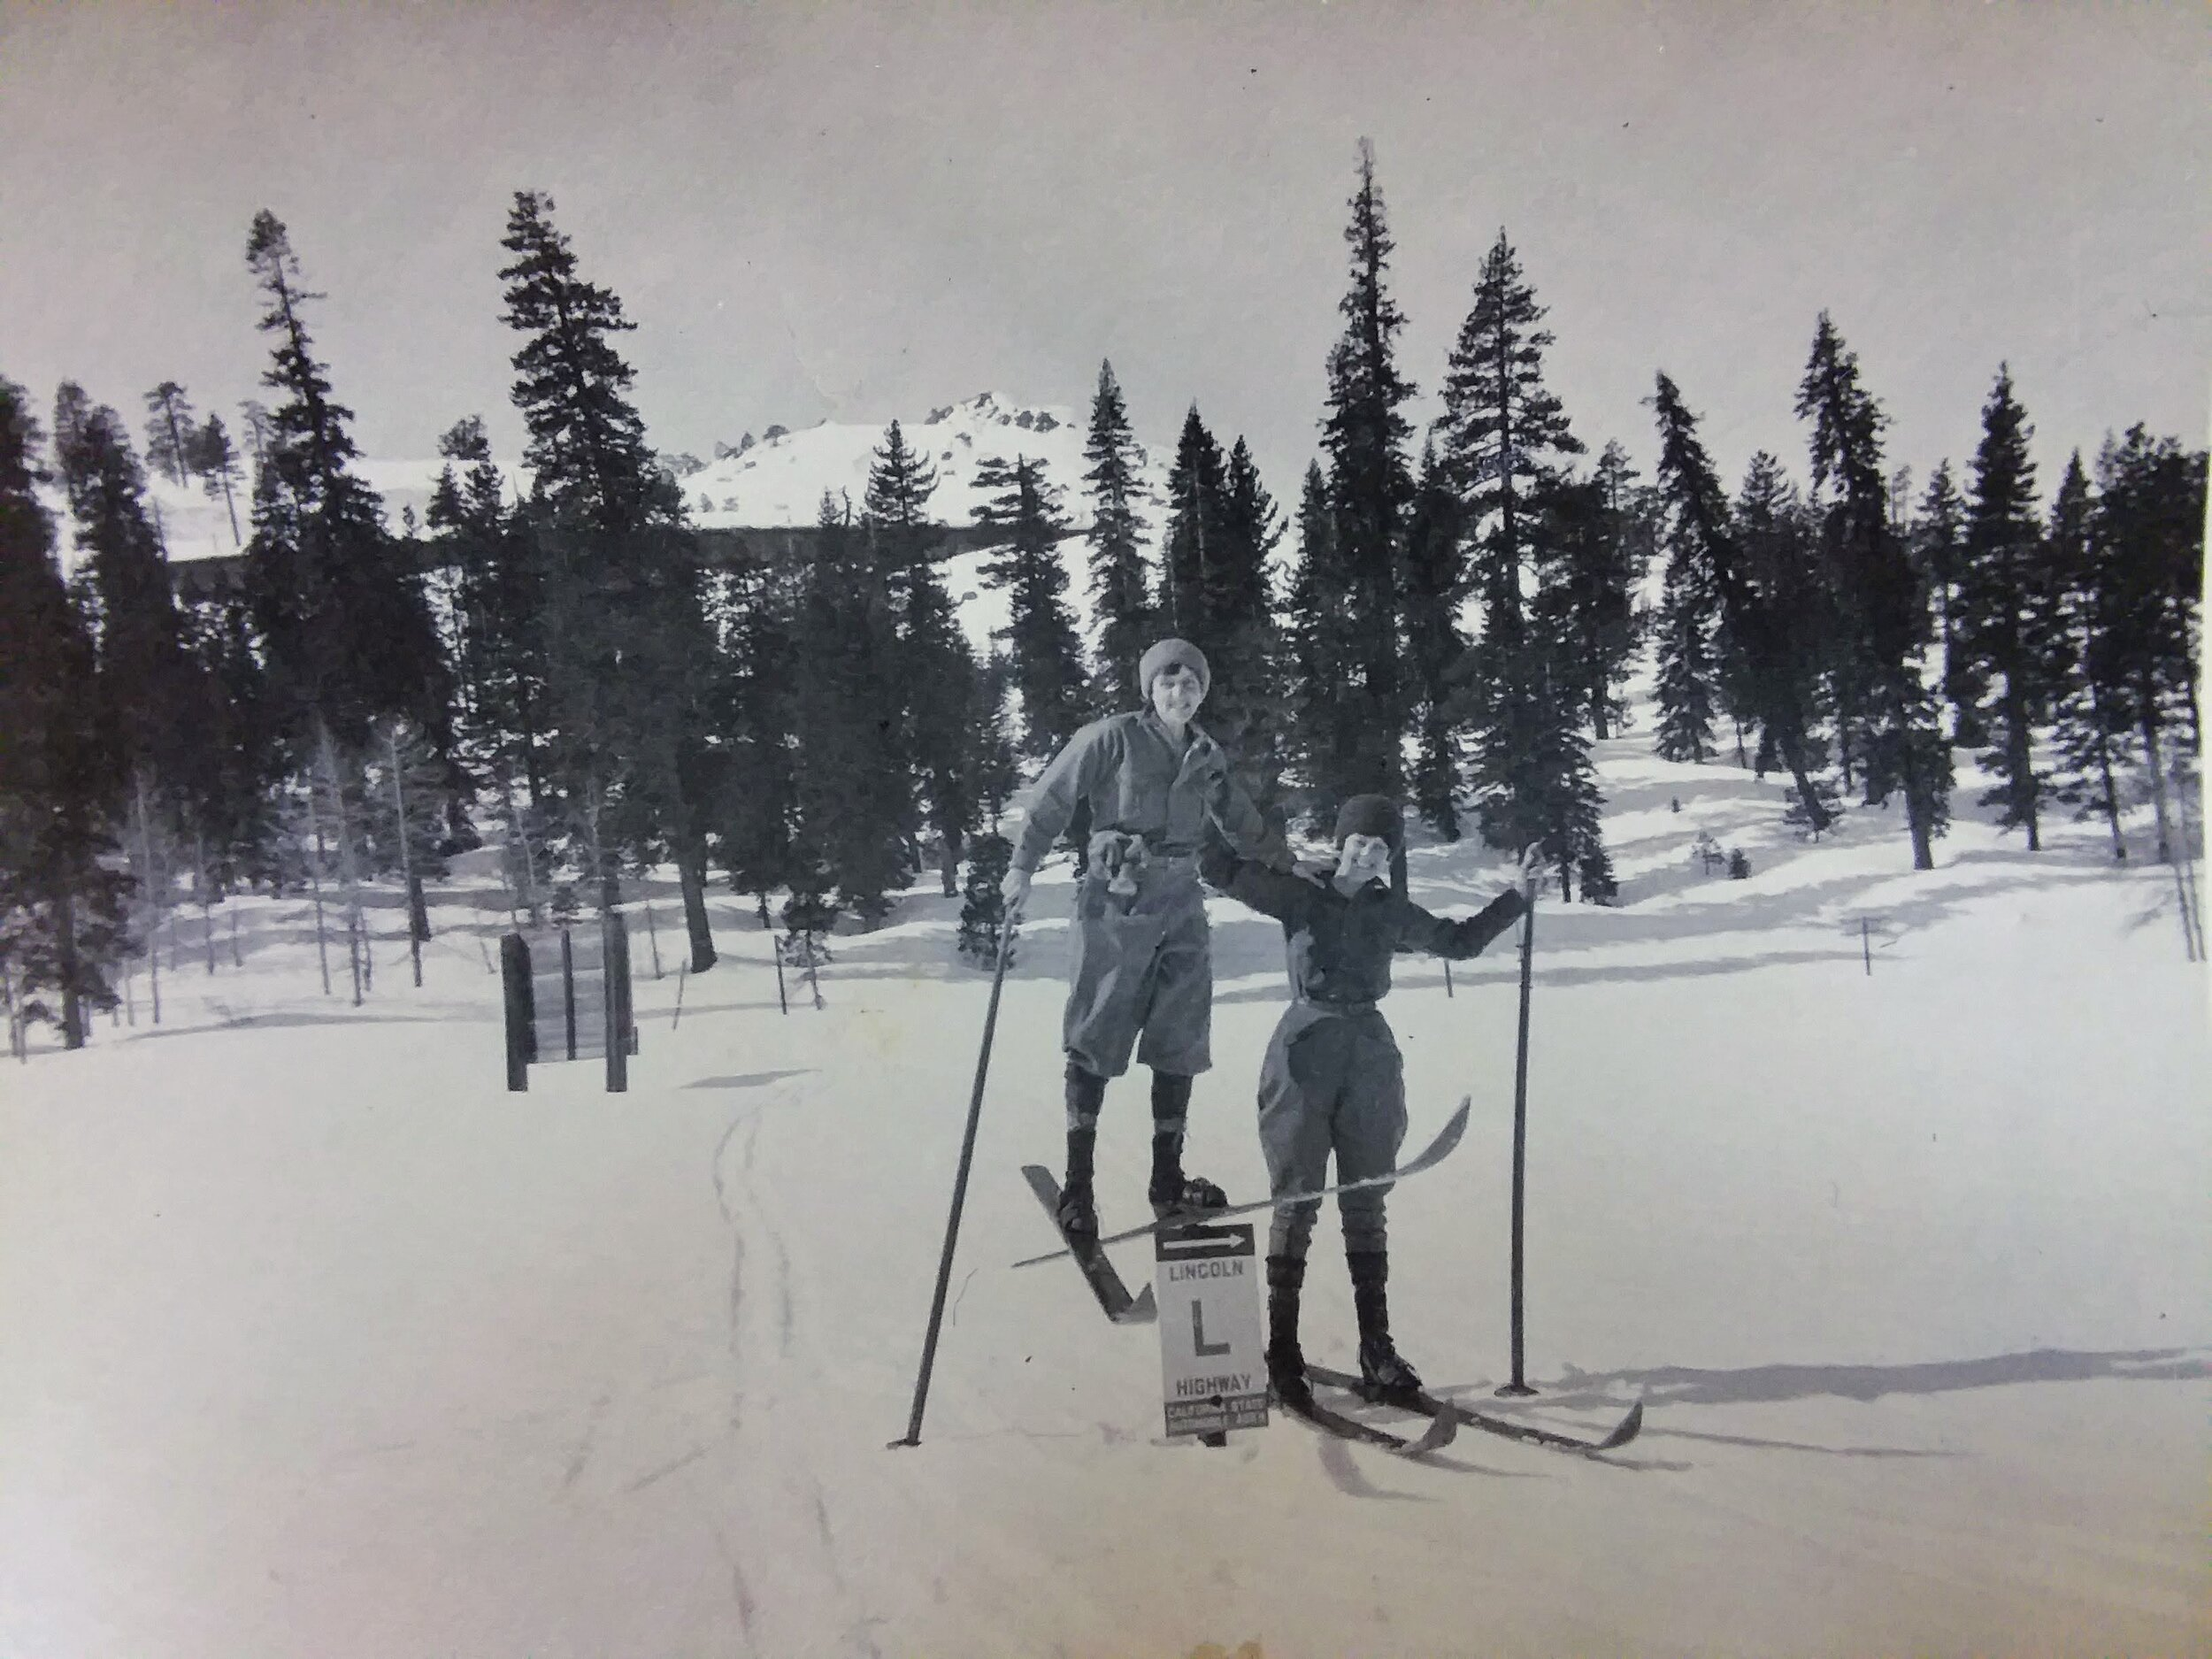 High snow near Cisco. Photo from Donner Summit Historical Society, Norm Sayler collection.